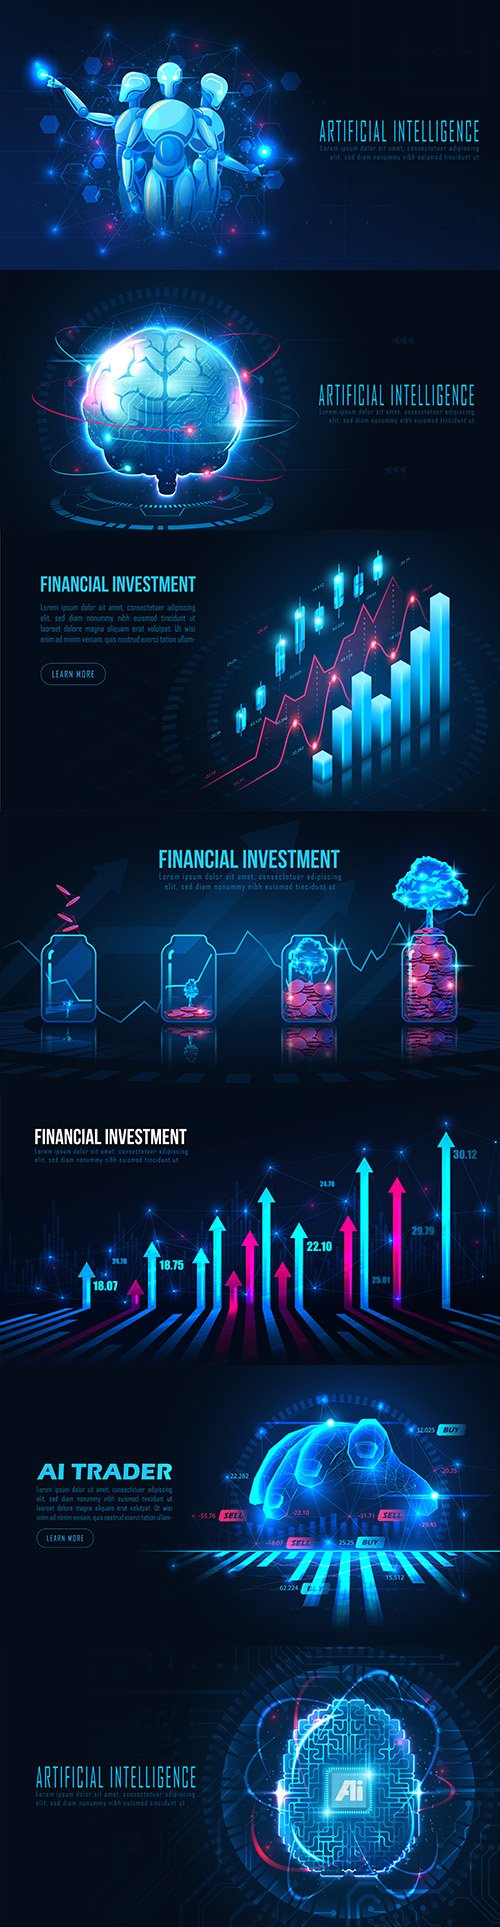 Artificial intelligence and financial analysis chart